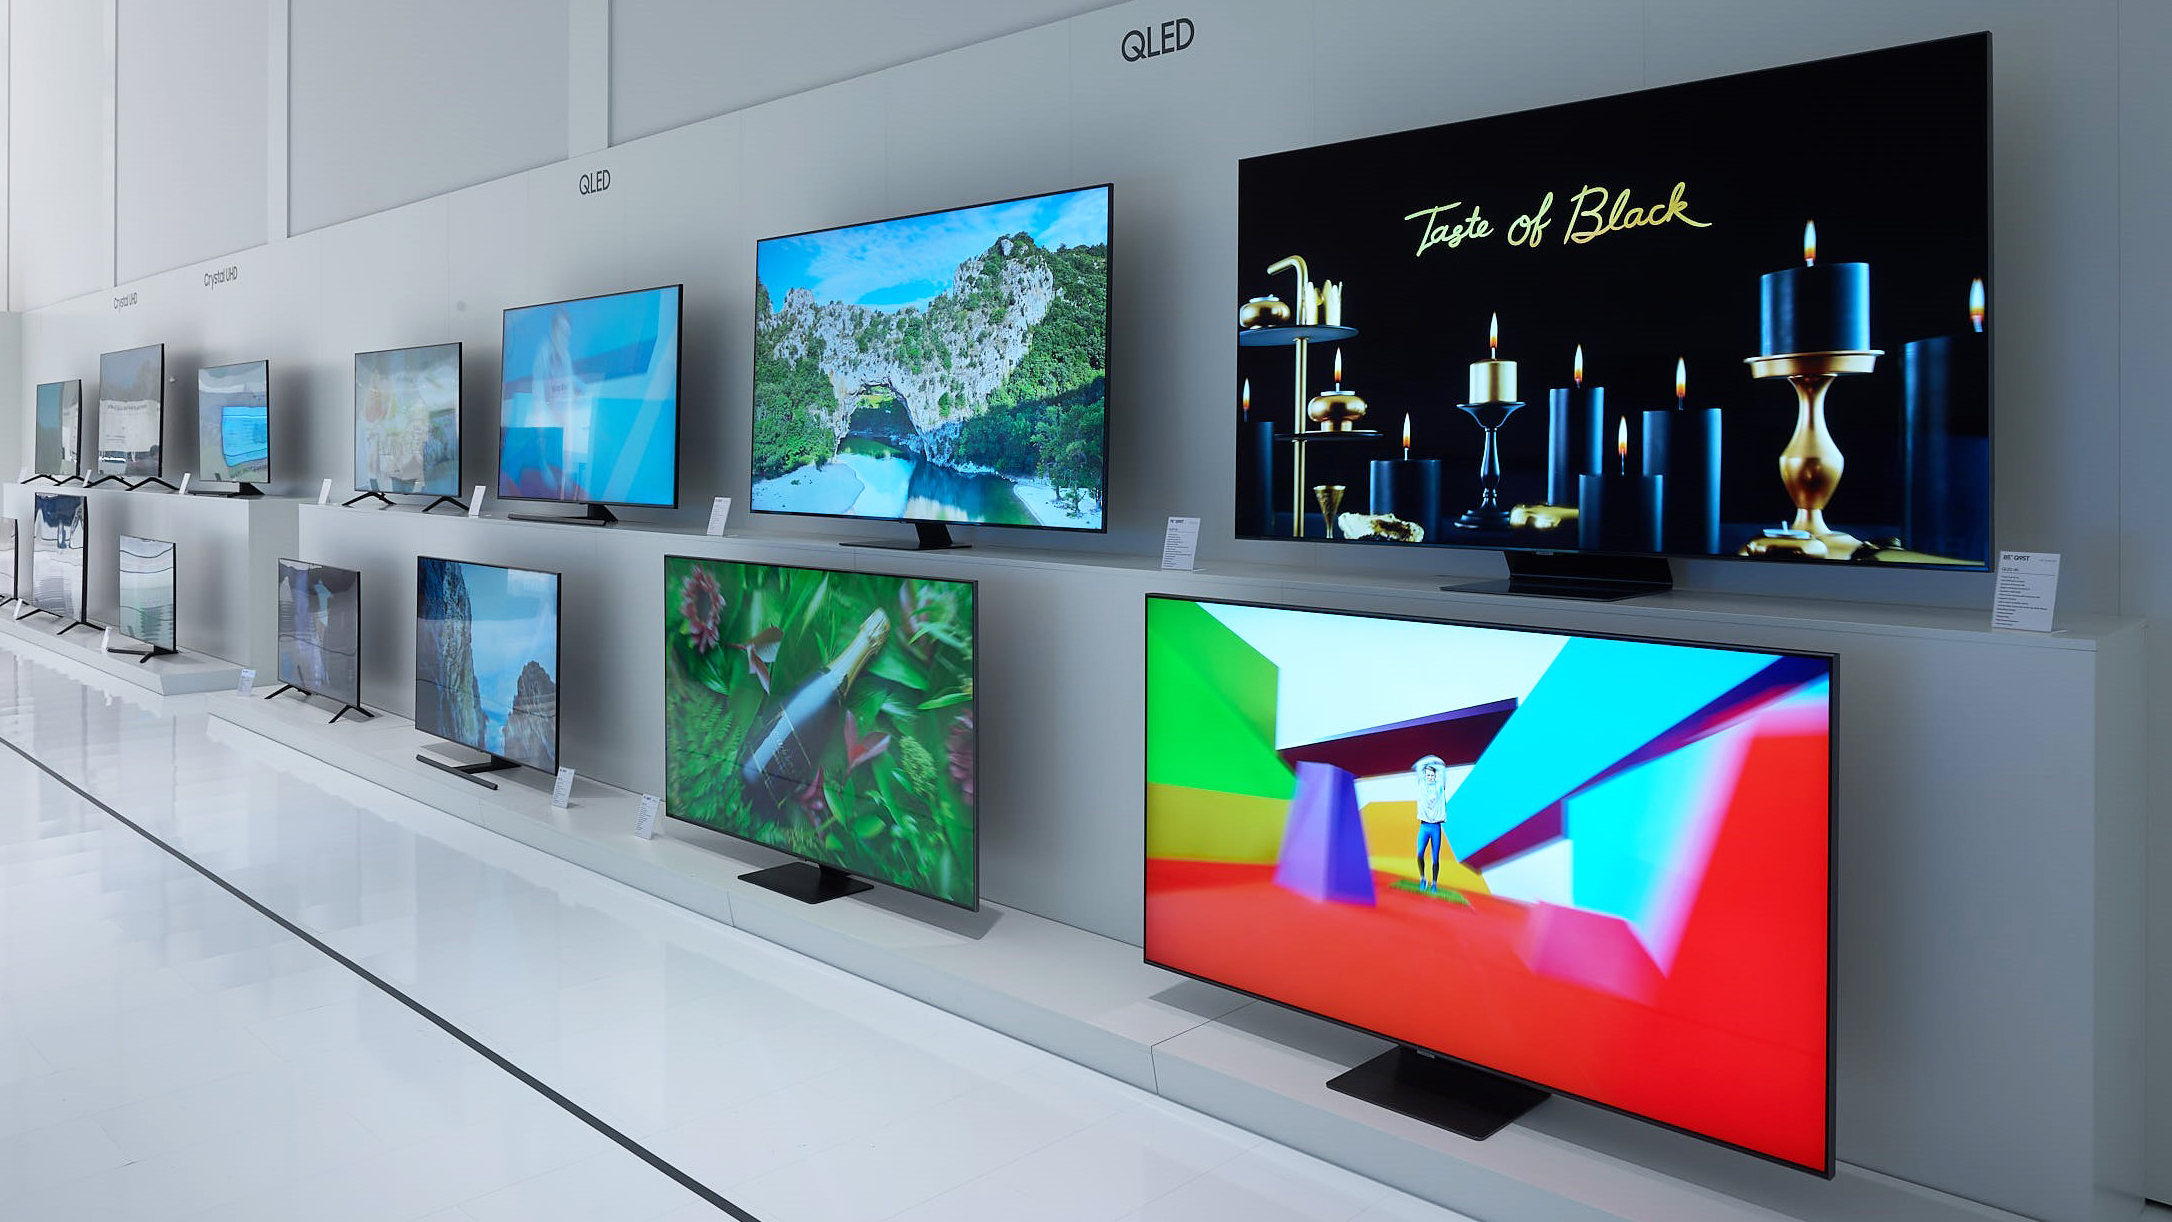 Best Samsung Tvs 2020 The Top Samsung 4k And 8k Tvs This Year Compared T3